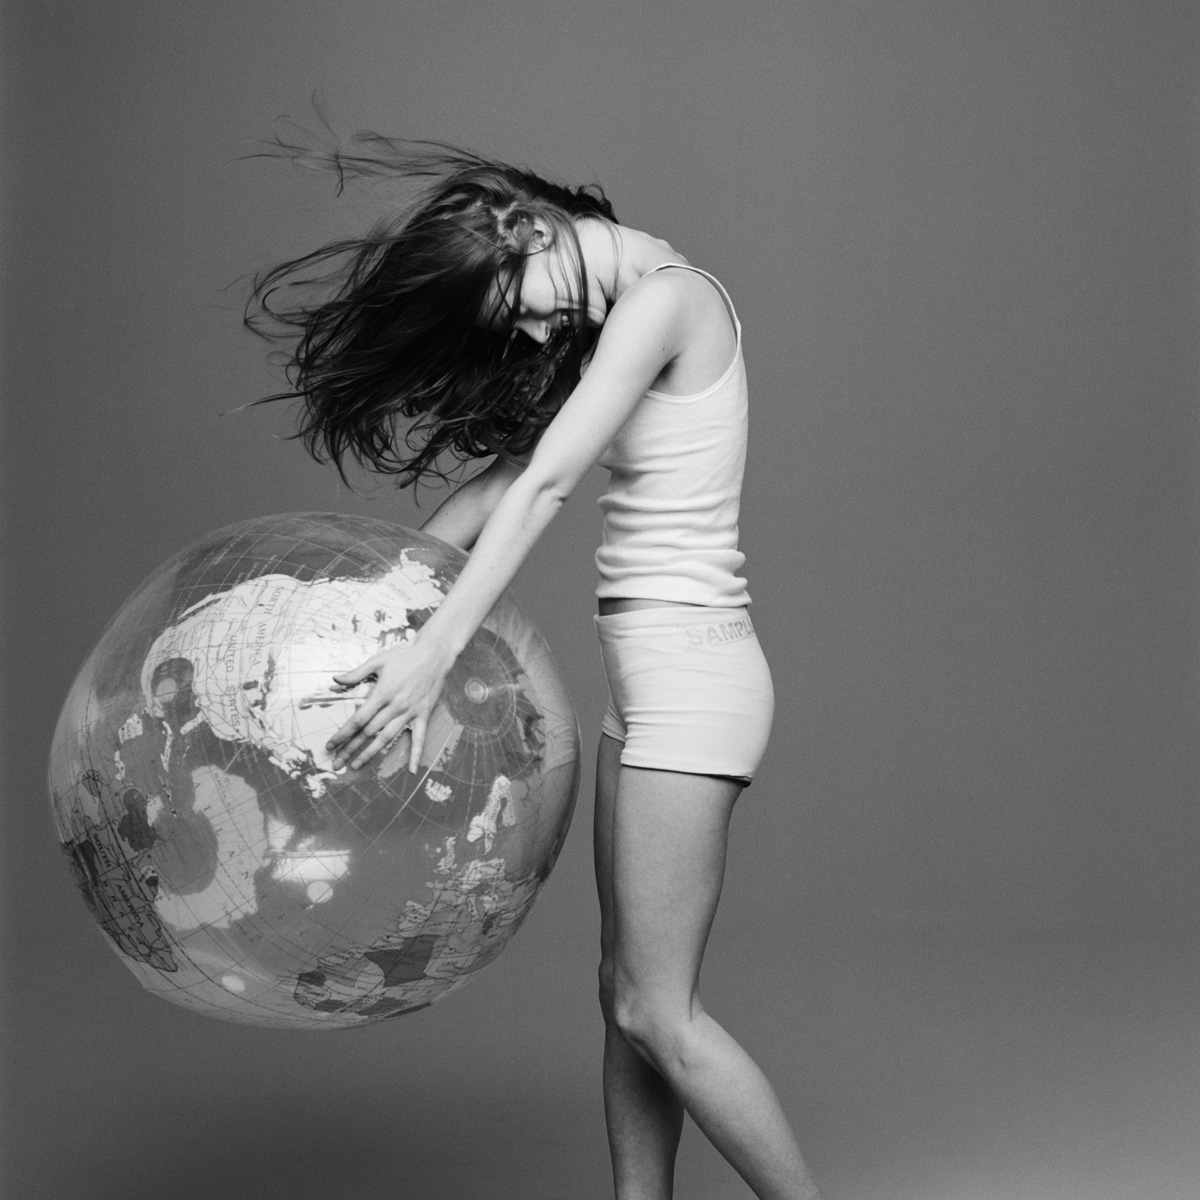 kate+moss+with+the+world+by+patrik+andersson-5.jpeg